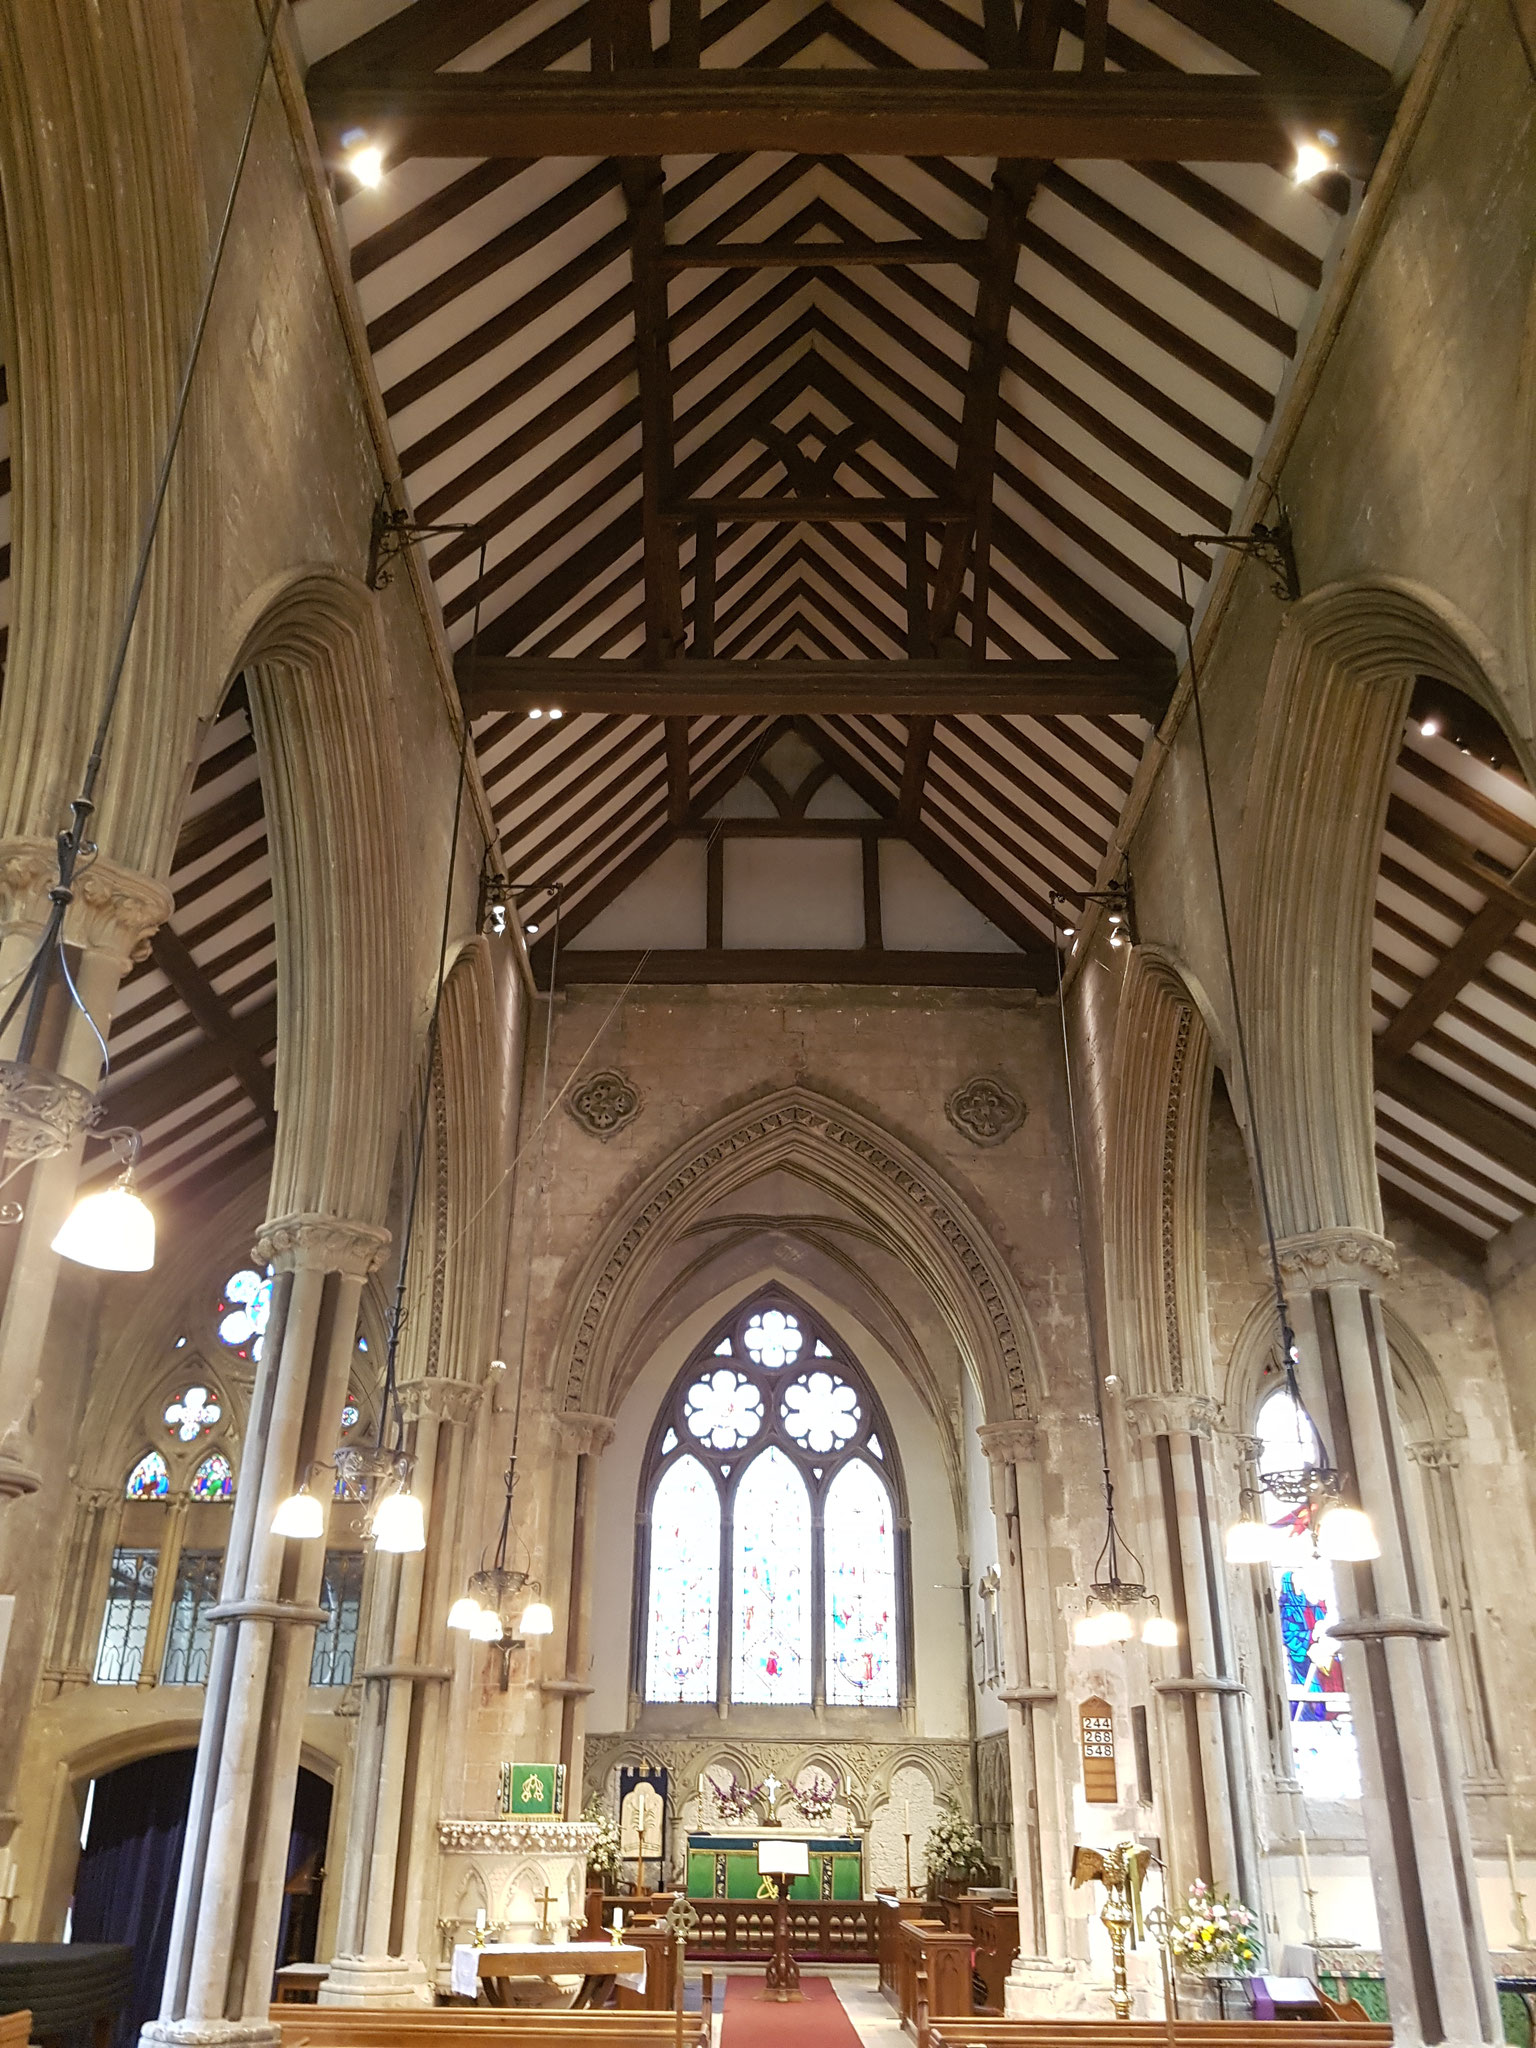 Early Gothic nave. Piers have alternating shafts of plain stone and Purbeck marble.